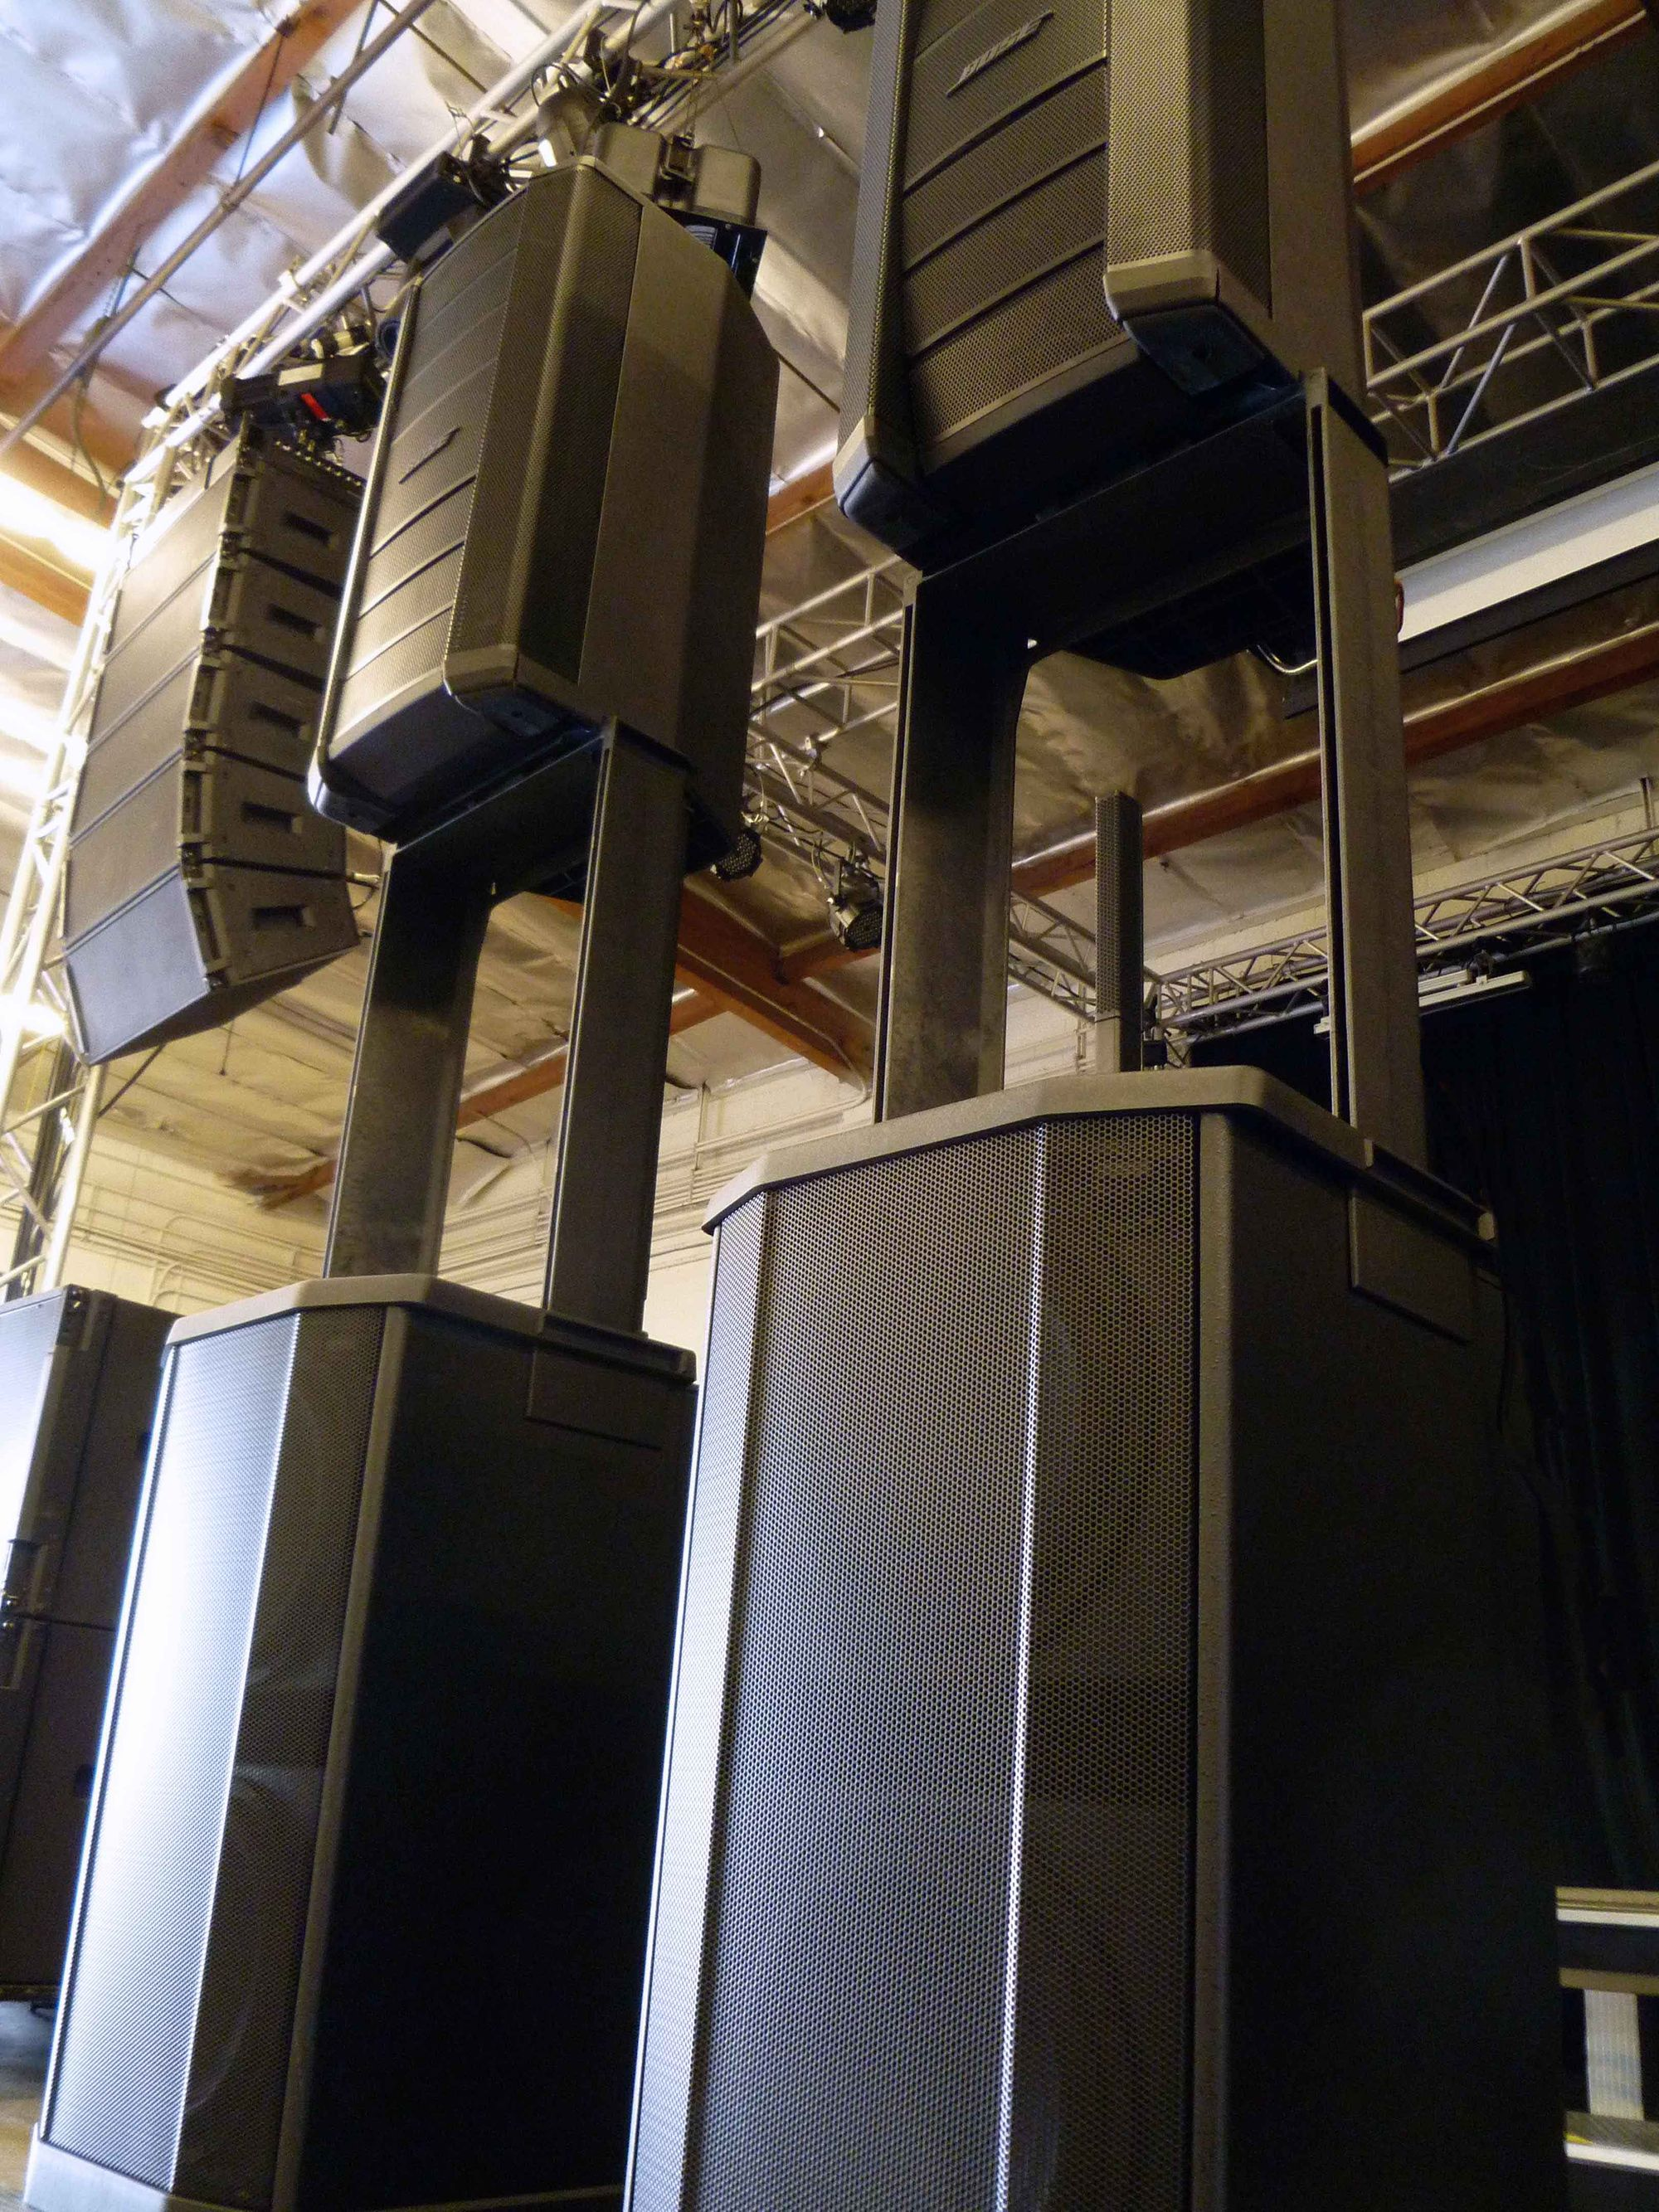 Bose F1 Flexible Array Loudspeaker System at Hollywood Sound Systems